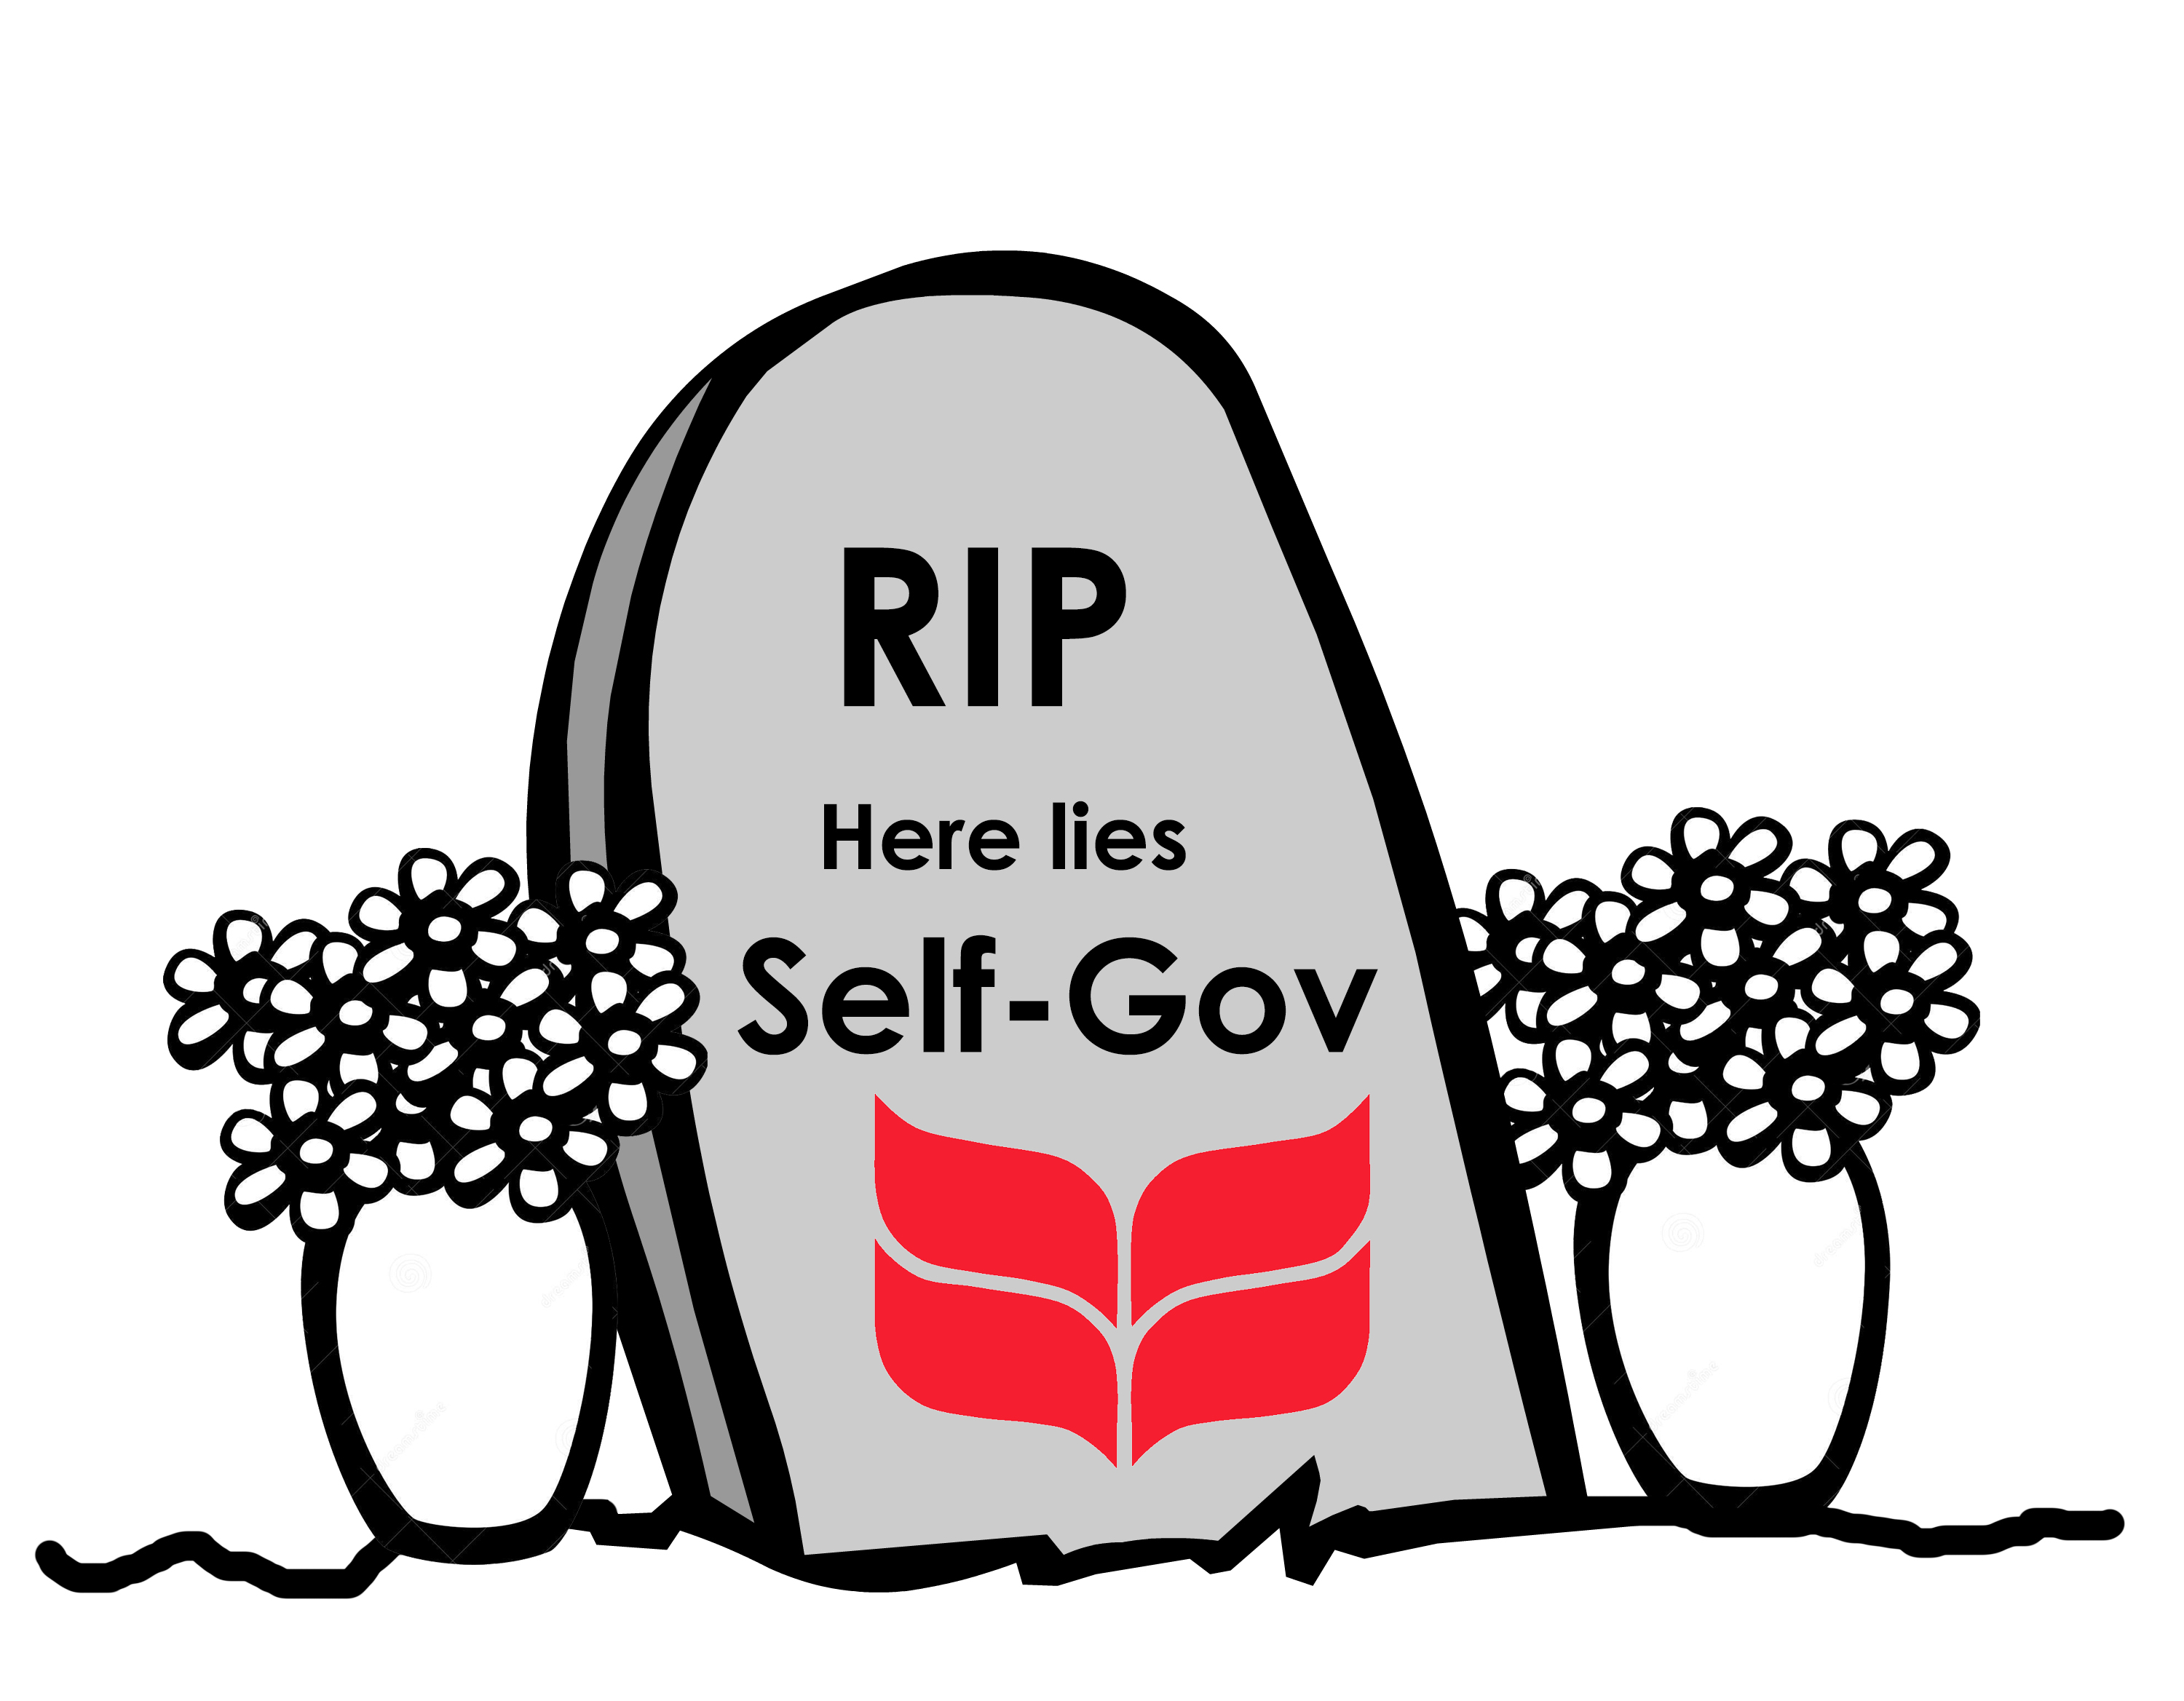 Funeral for Self-Gov Graphic